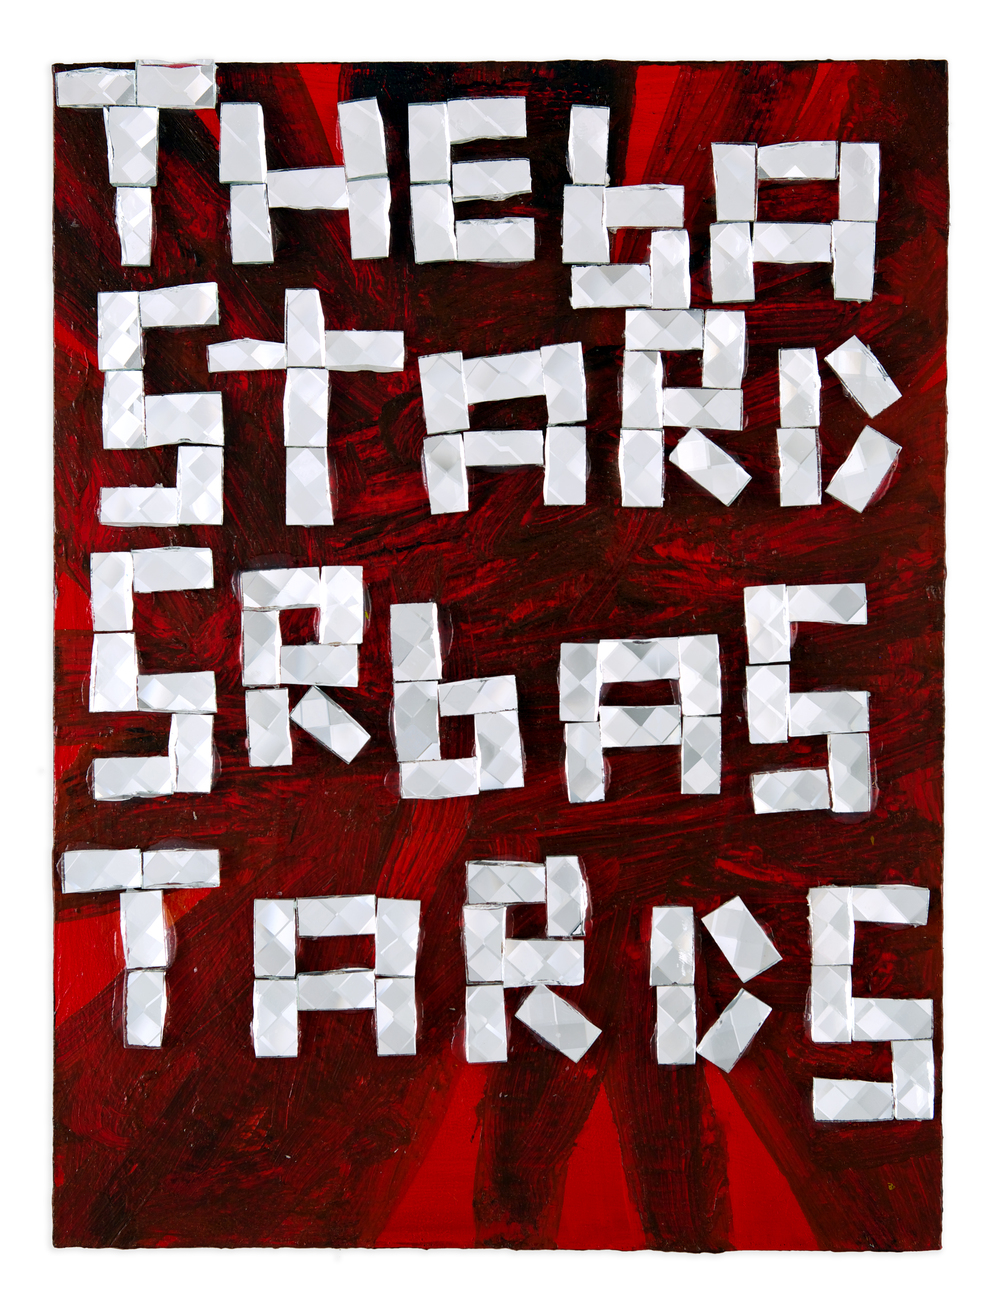 Bastards , 2014, acrylic and glass tile on wood, 12 x 9 in